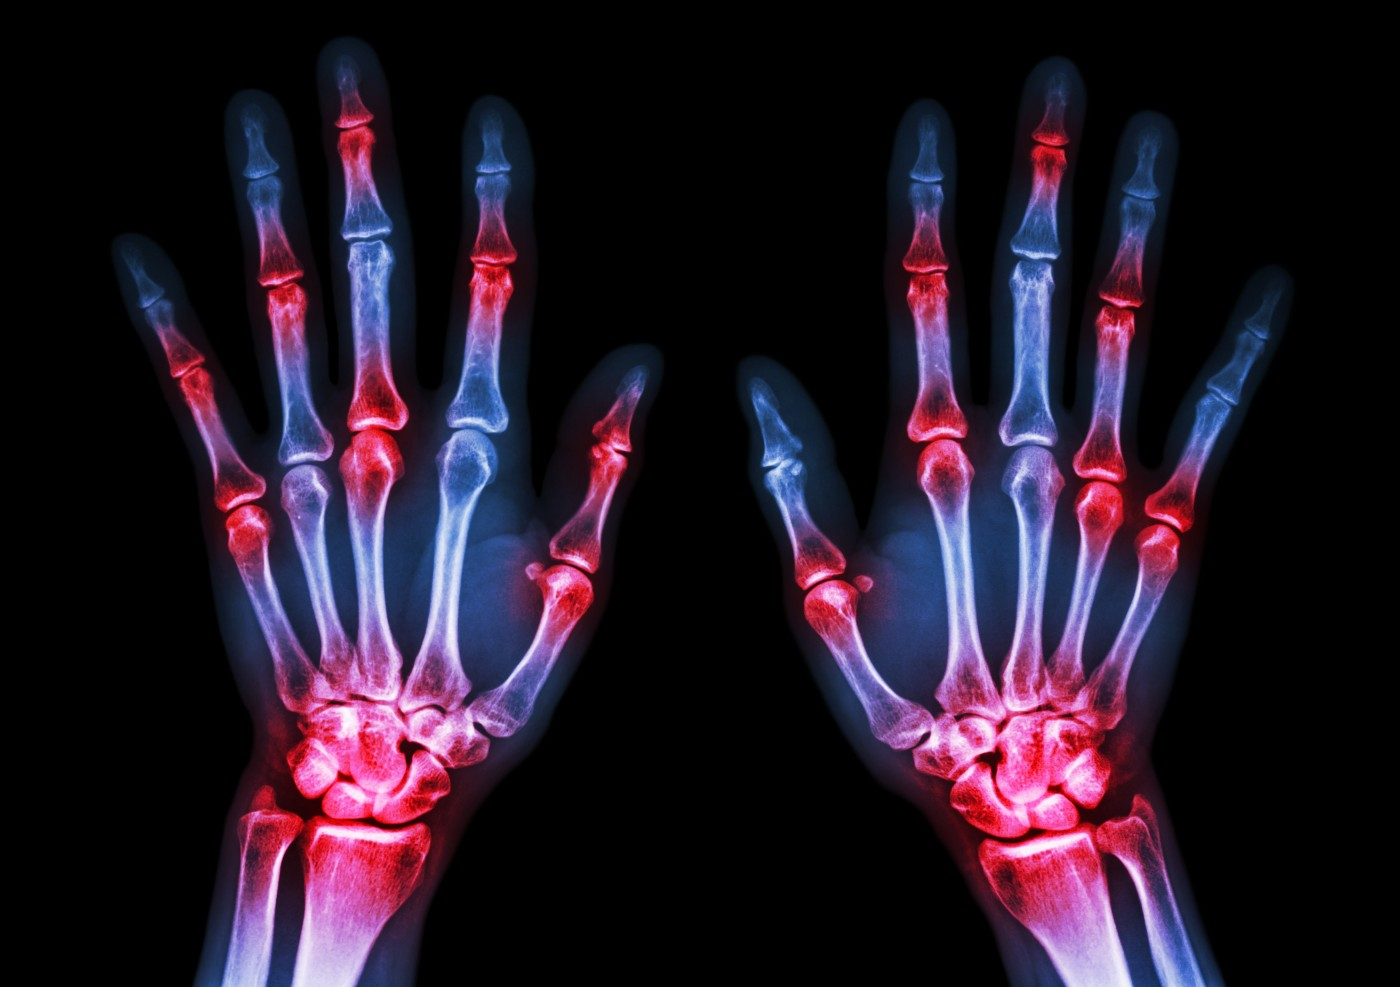 Digital X-Ray Radiogrammetry to Evaluate Bone Mineral Density in Rheumatoid Arthritis Patients